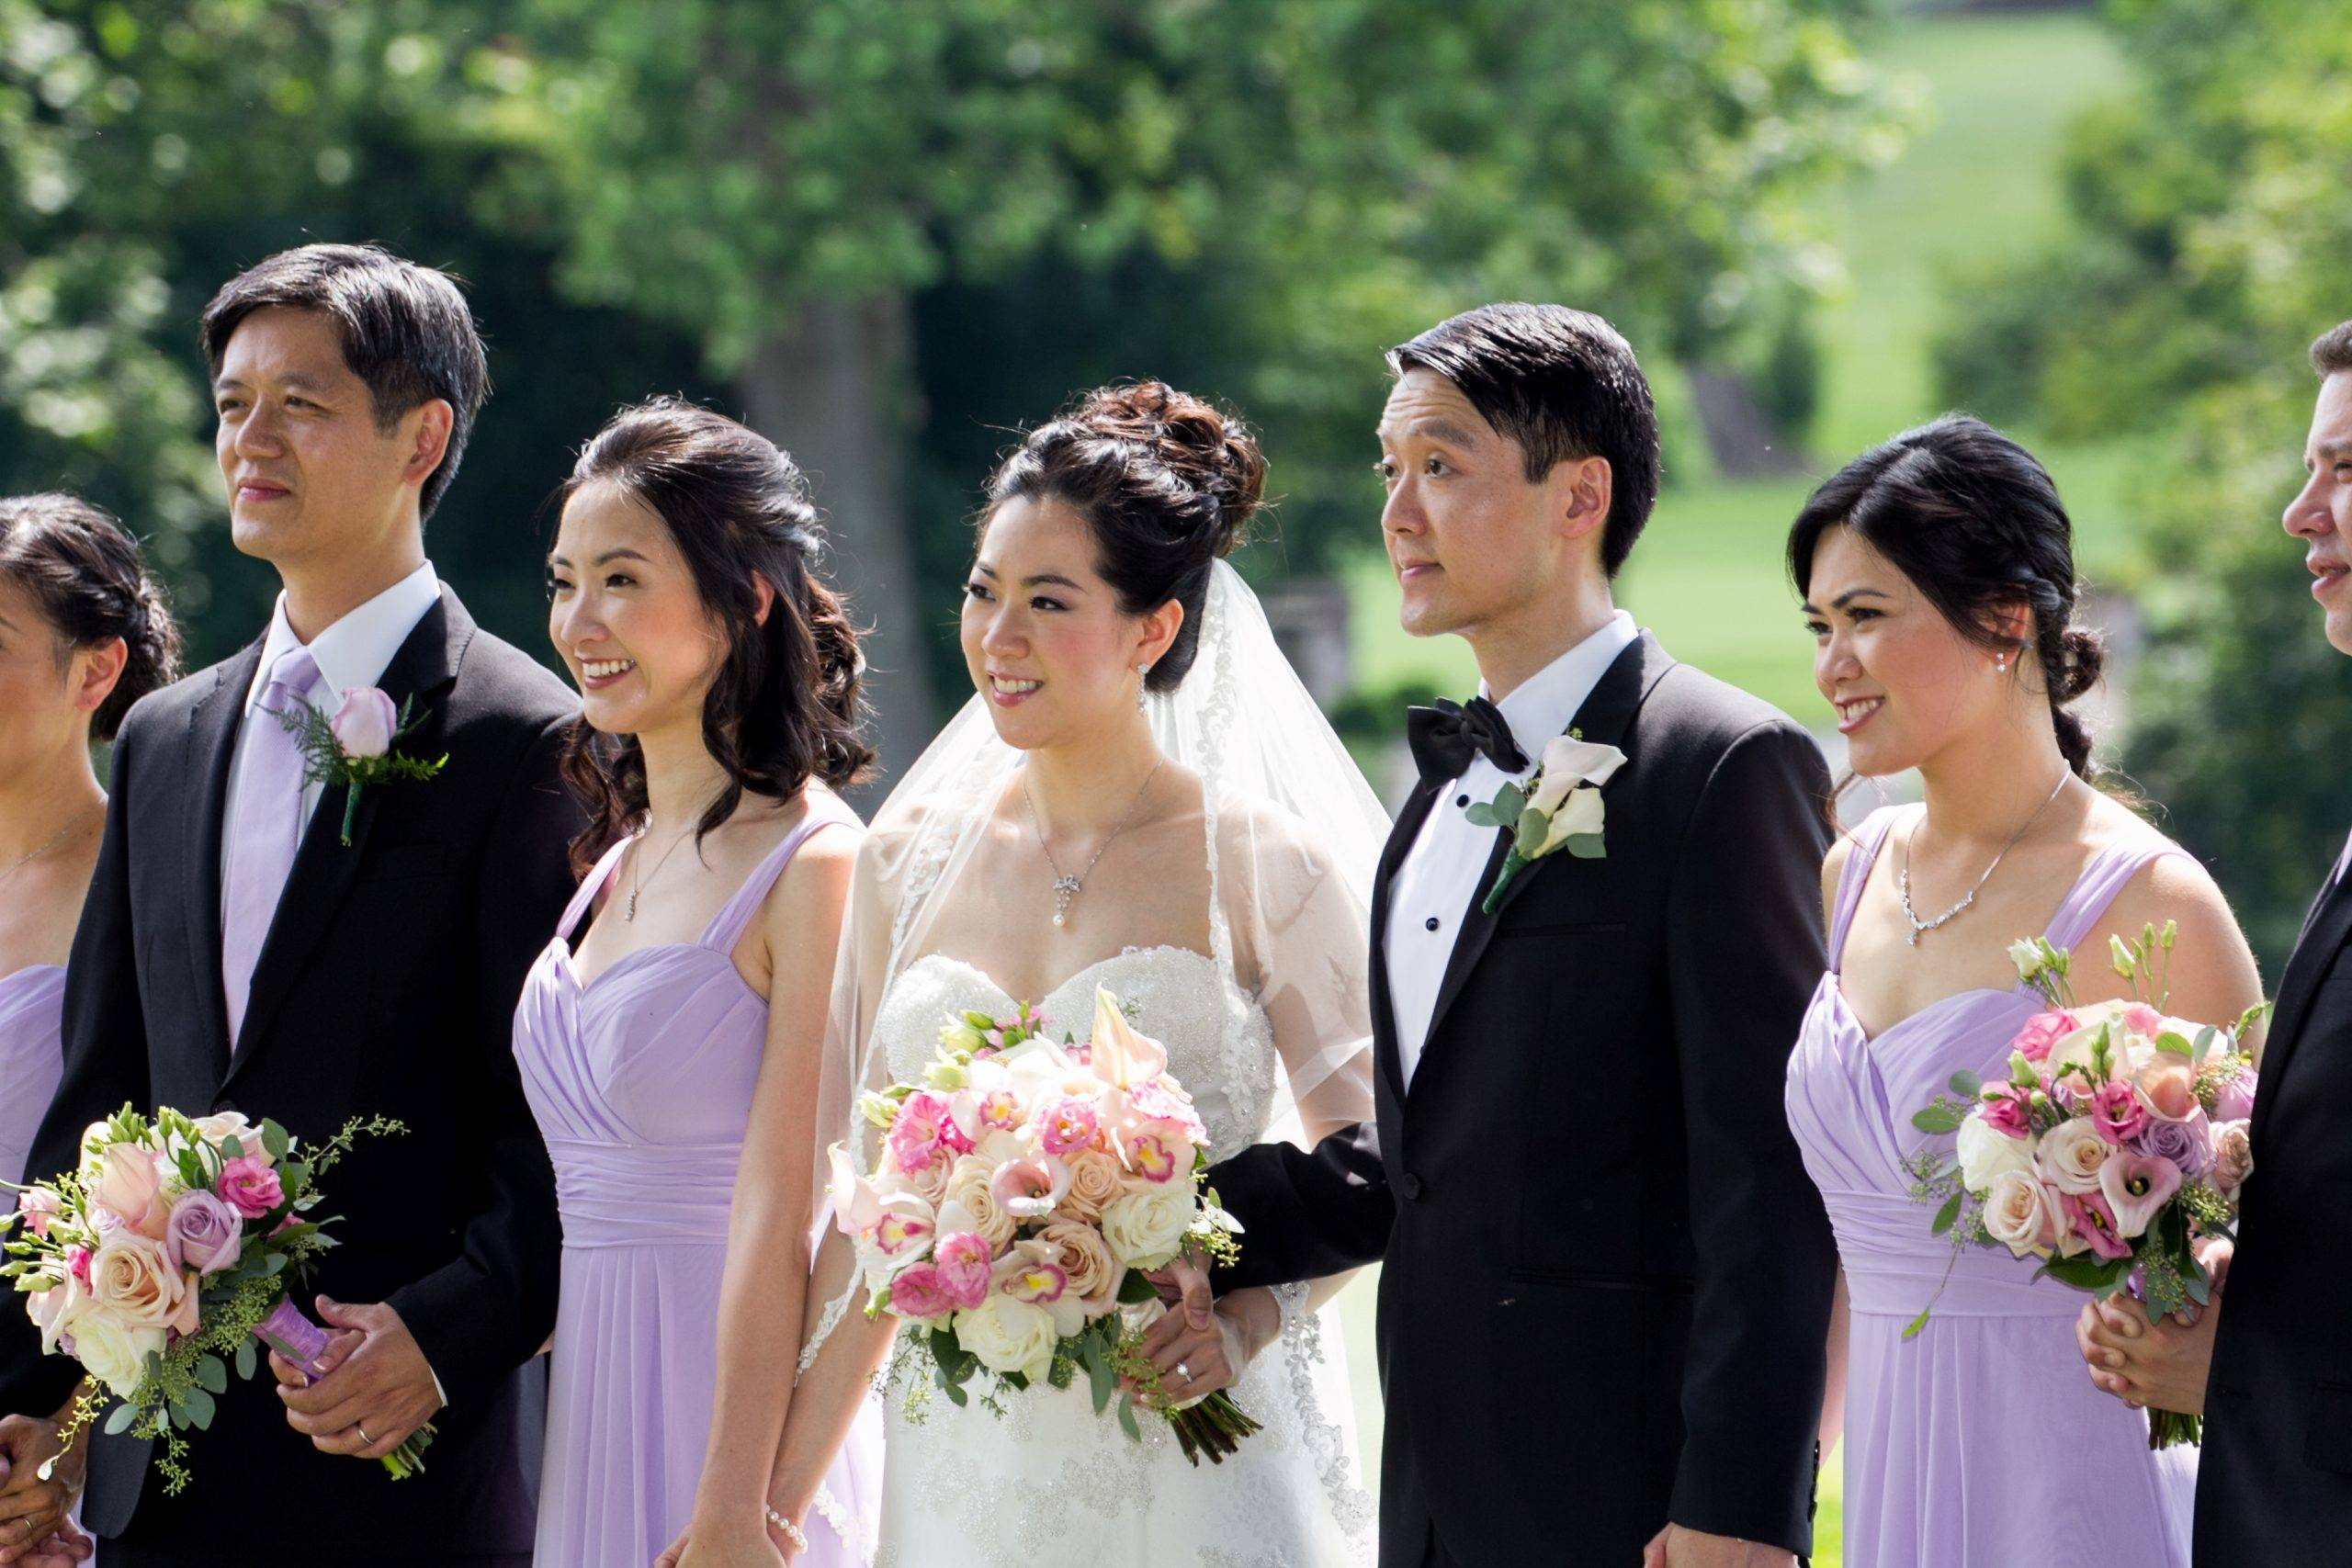 Brooklake bride and groom with bridal party